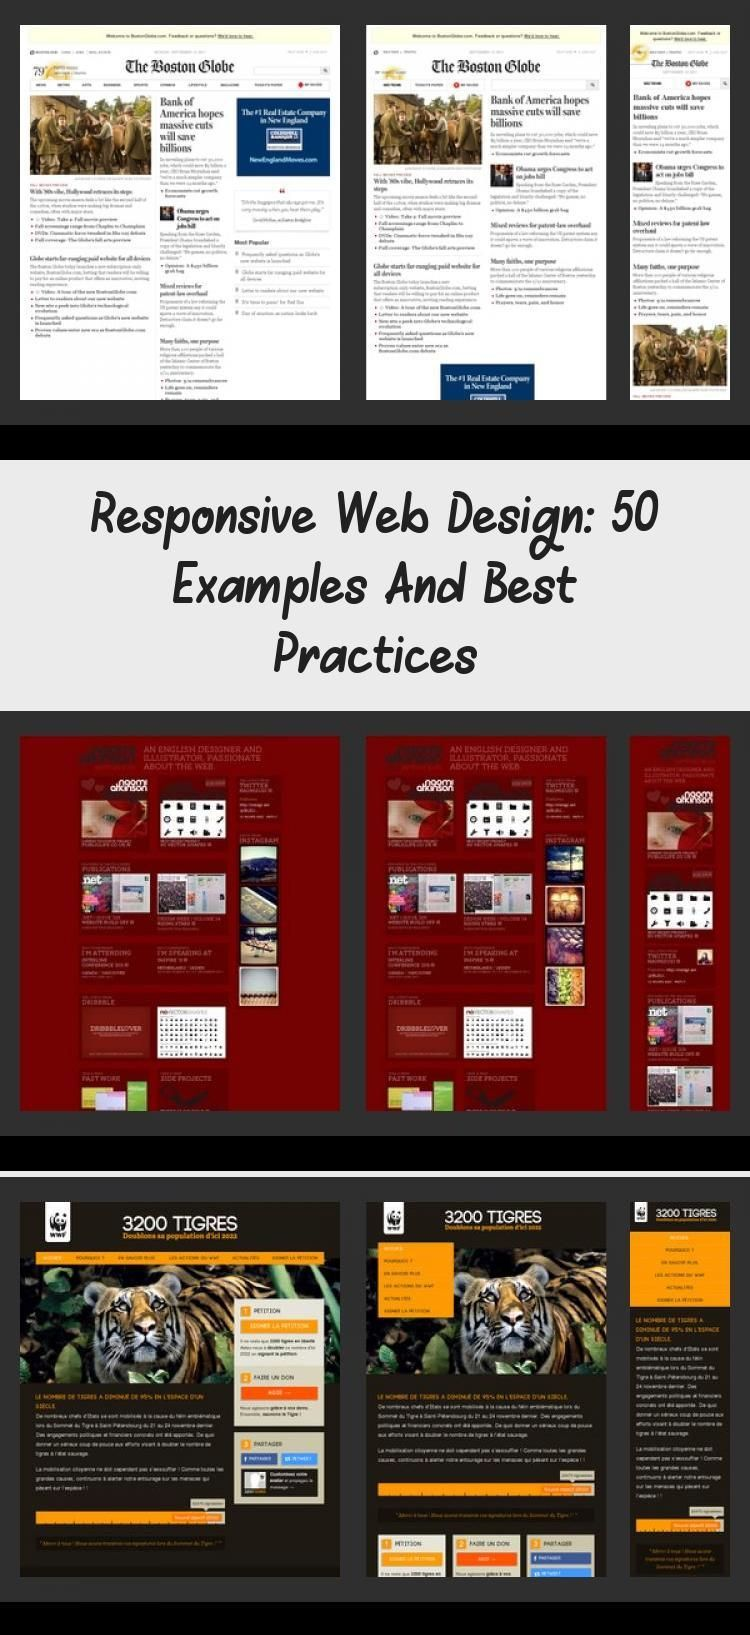 Responsive Web Design 50 Examples And Best Practices Design Responsive Web Design 50 Examples And Best Pr In 2020 Web Design Web Design Examples Food Web Design